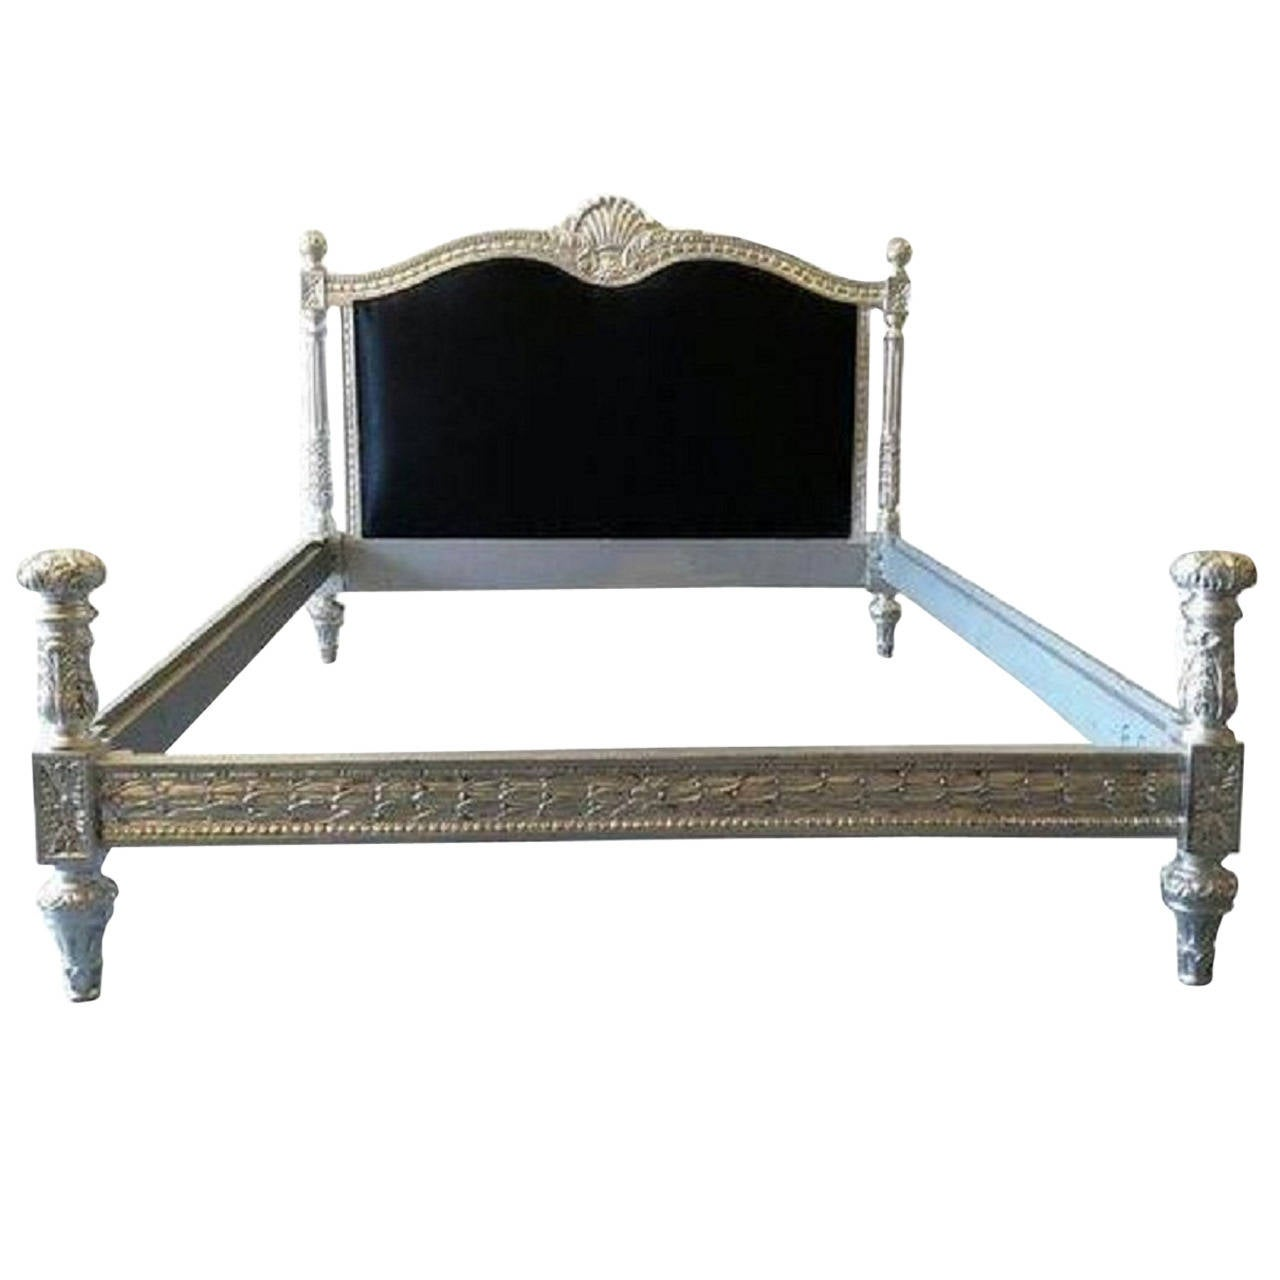 French Baroque Bed Of French Bed Silver And Black Velvet In Louis Xv Baroque